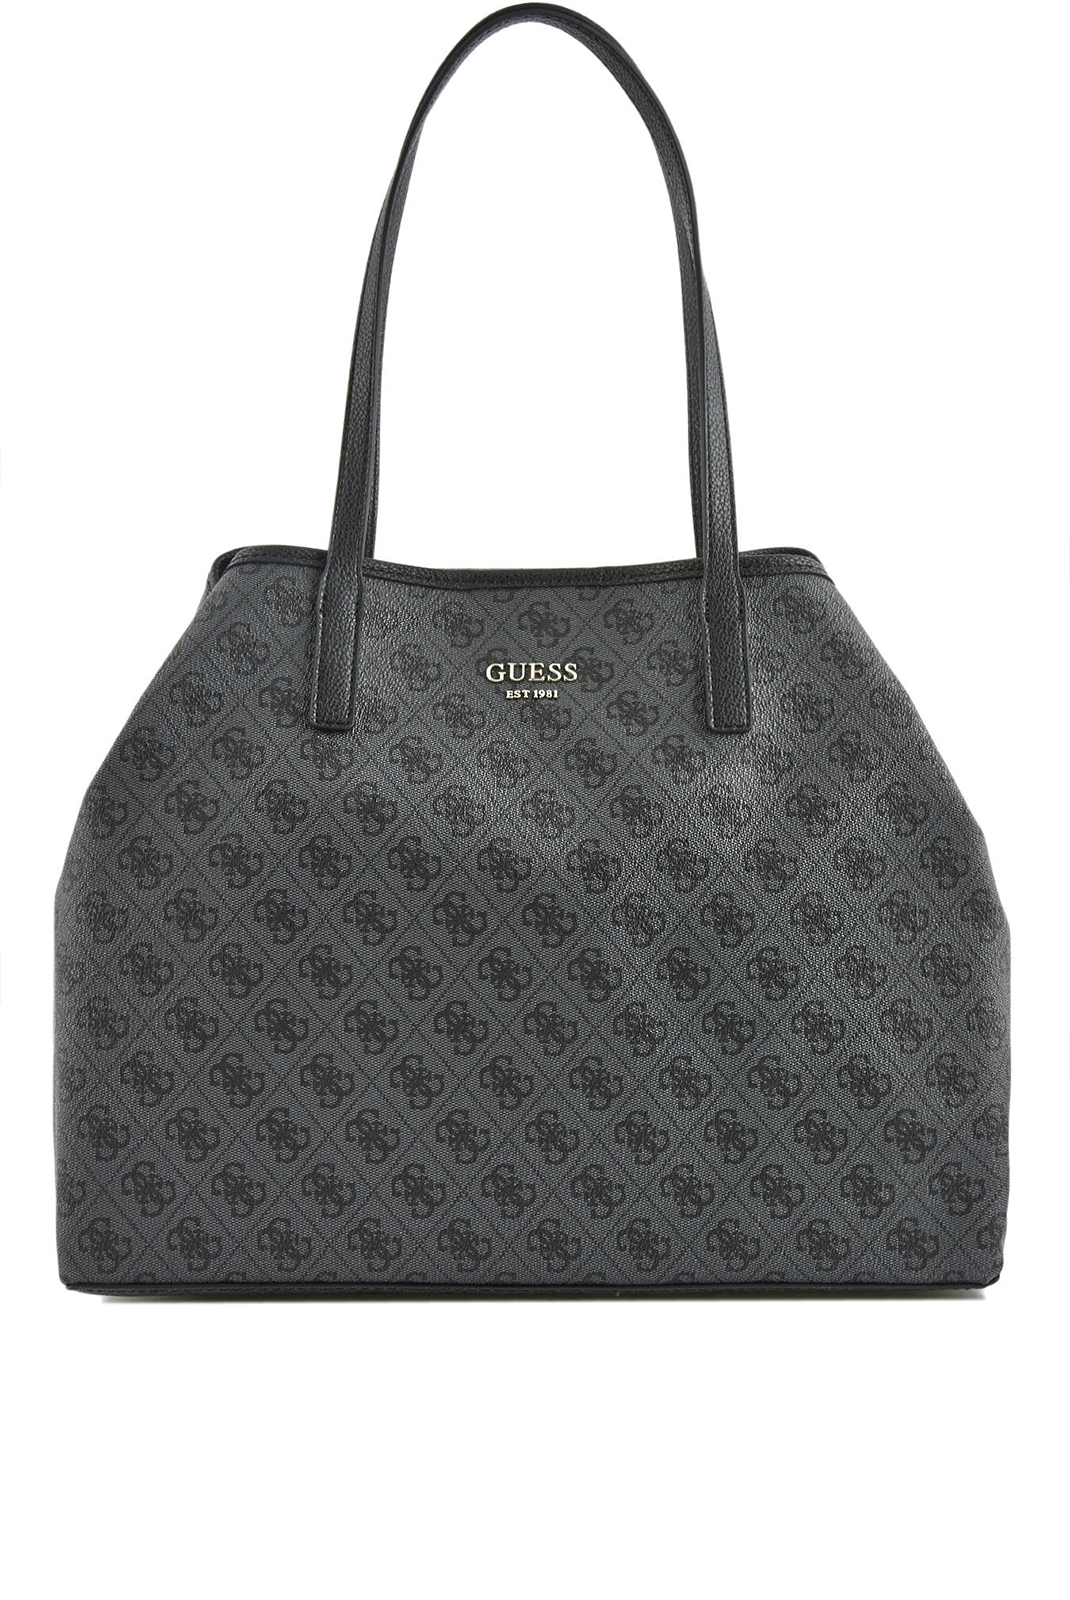 Cabas / Sacs shopping  Guess jeans HWSG69 95240 Vikky COAL